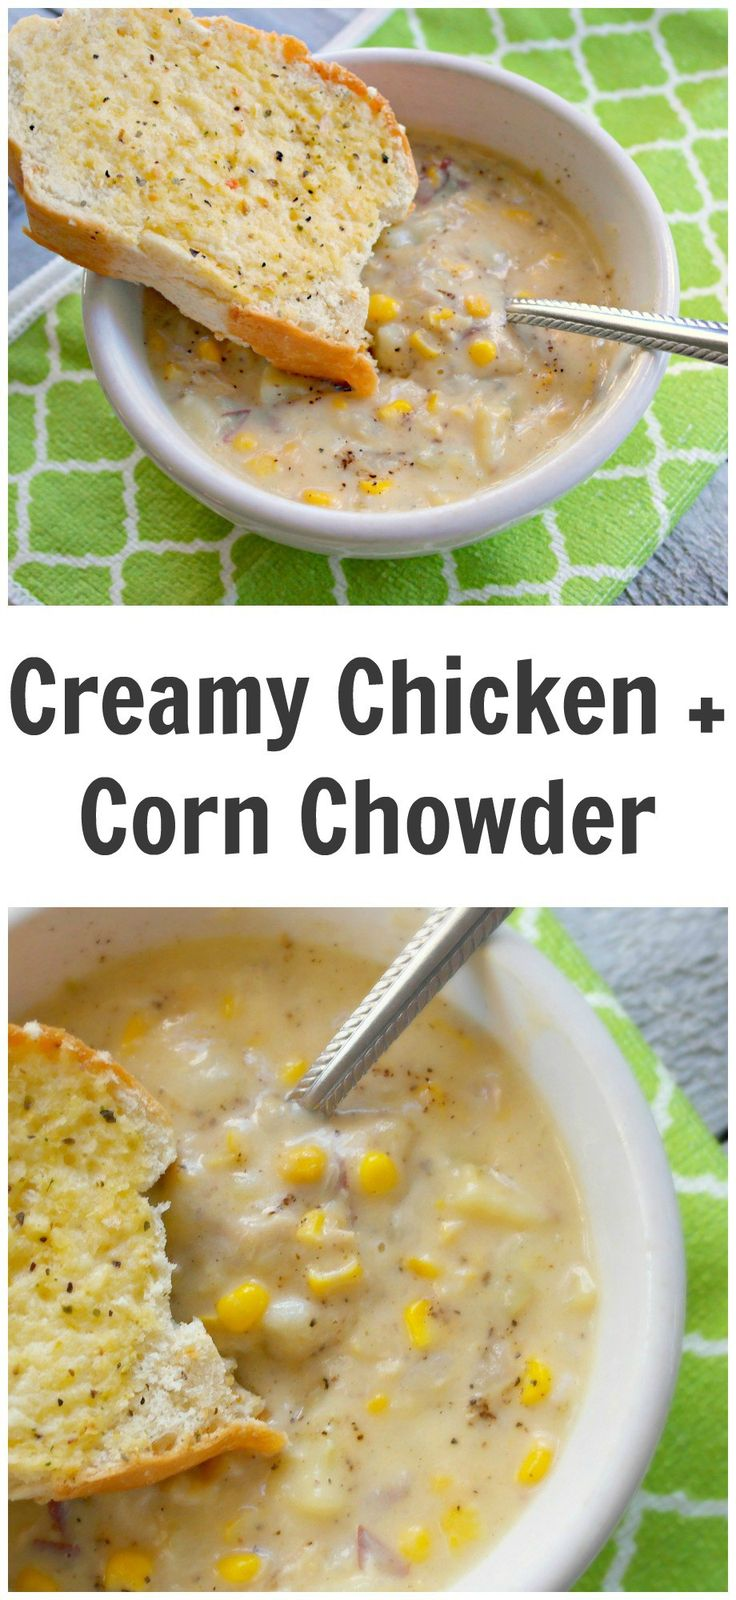 Easy Creamy Chicken And Corn Chowder Soup October 20, 2015 by Katrina 10 Comments 7.9k1322511002601 This is a super easy creamy chicken and corn chowder recipe that can be made quickly. I added a tip at the bottom to show you how you can make it in the slow cooker. If you are looking for more soup recipes, why not try one of these? Easy Homemade Miso Soup What to do With Leftover Chili Easy Creamy Chicken And Corn Chowder Soup Printable recipe is available at the bottom of this post. ...